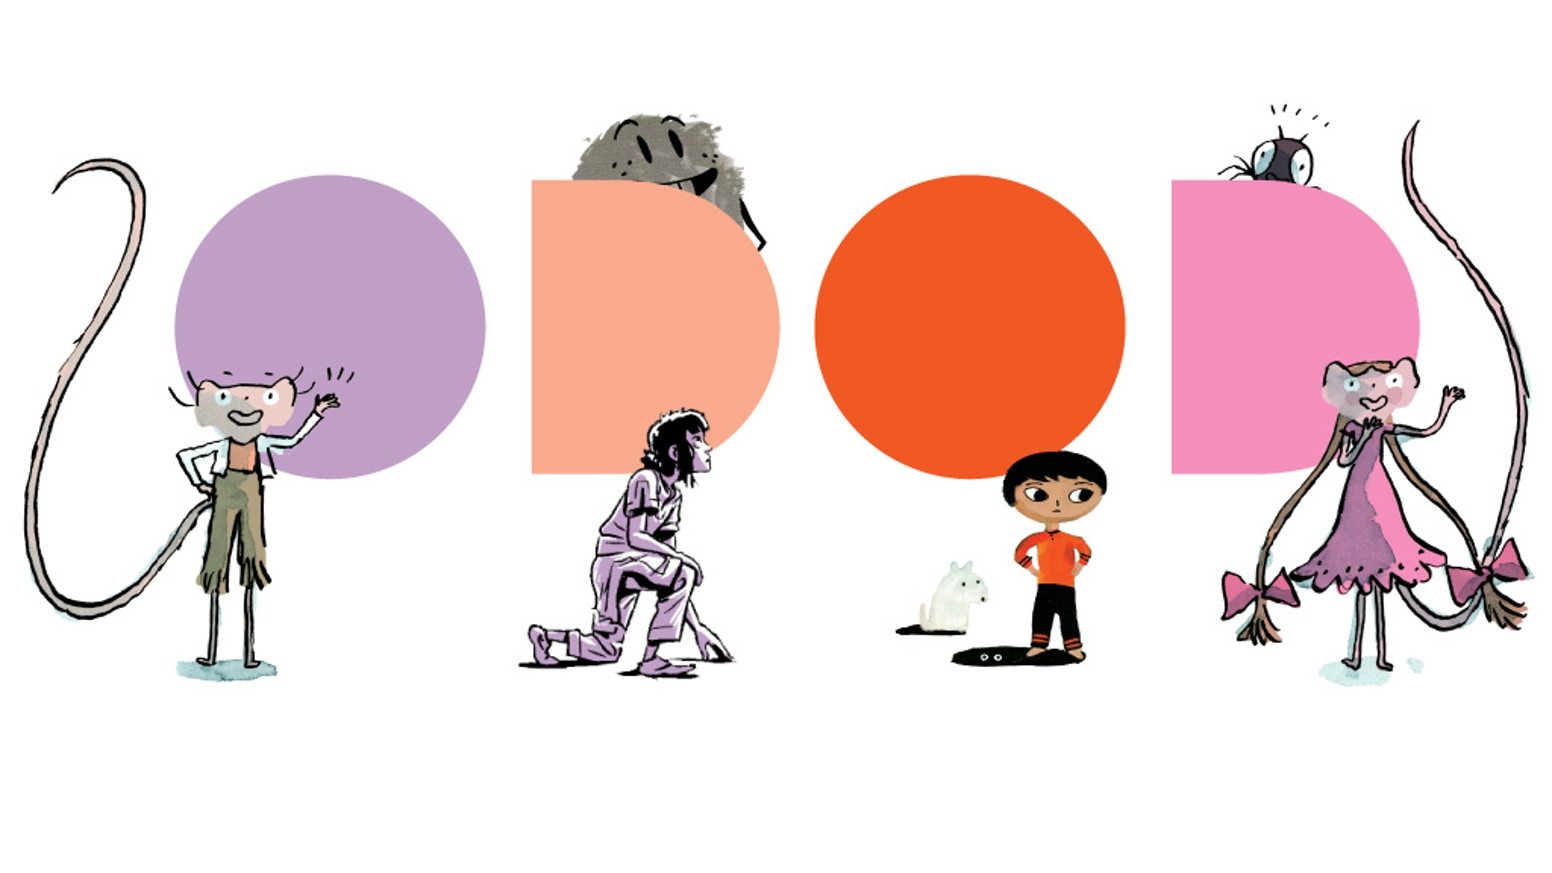 Odod Books is a new place for great comics for young readers. We want to spark creativity and imagination!